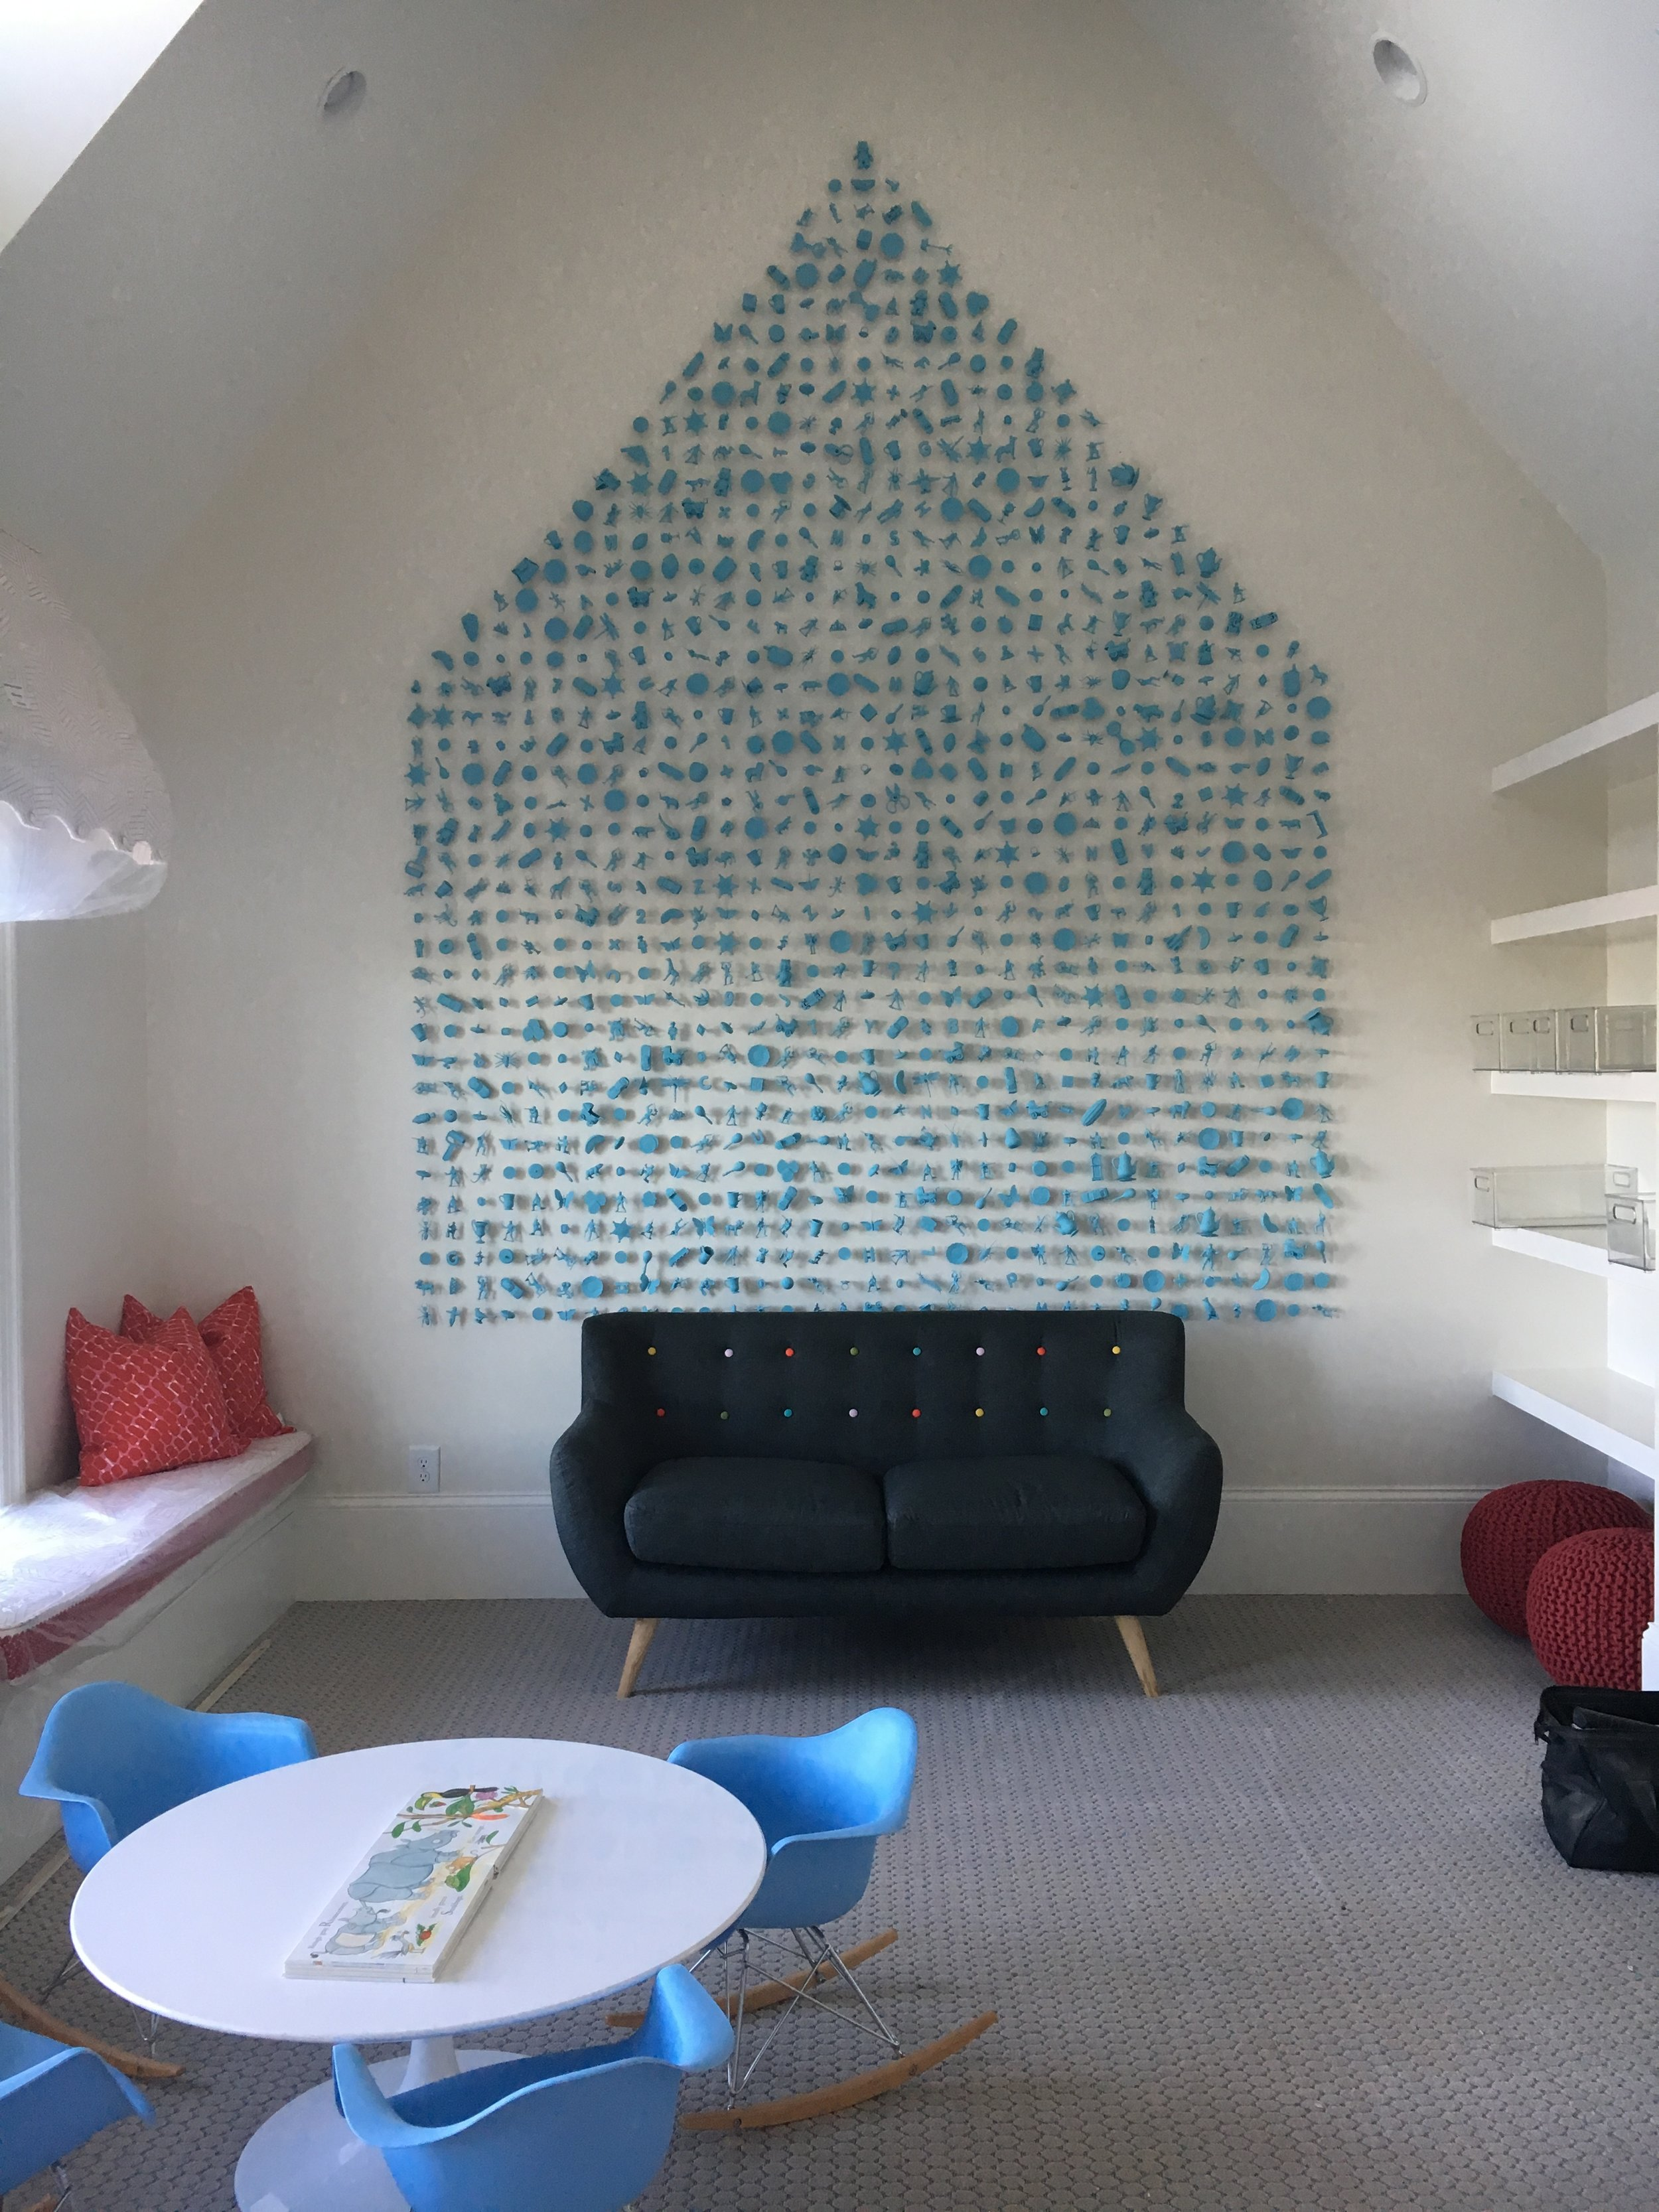 Thousands of toys, painted monochromatic blue, and assembled on the walls of this stunning playroom.